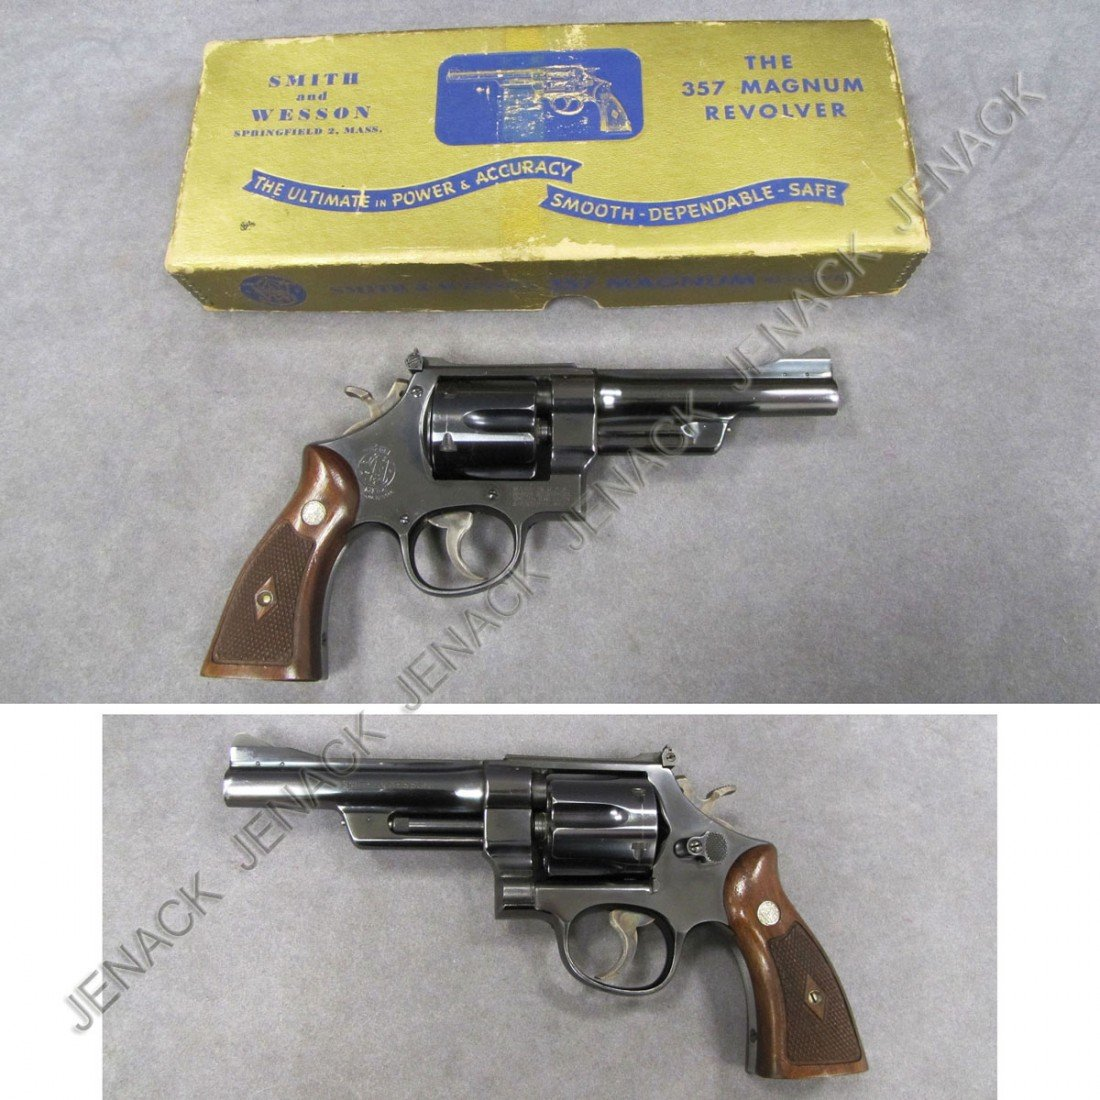 18: **RESTRICTED** SMITH & WESSON PRE-WAR REVOLVER